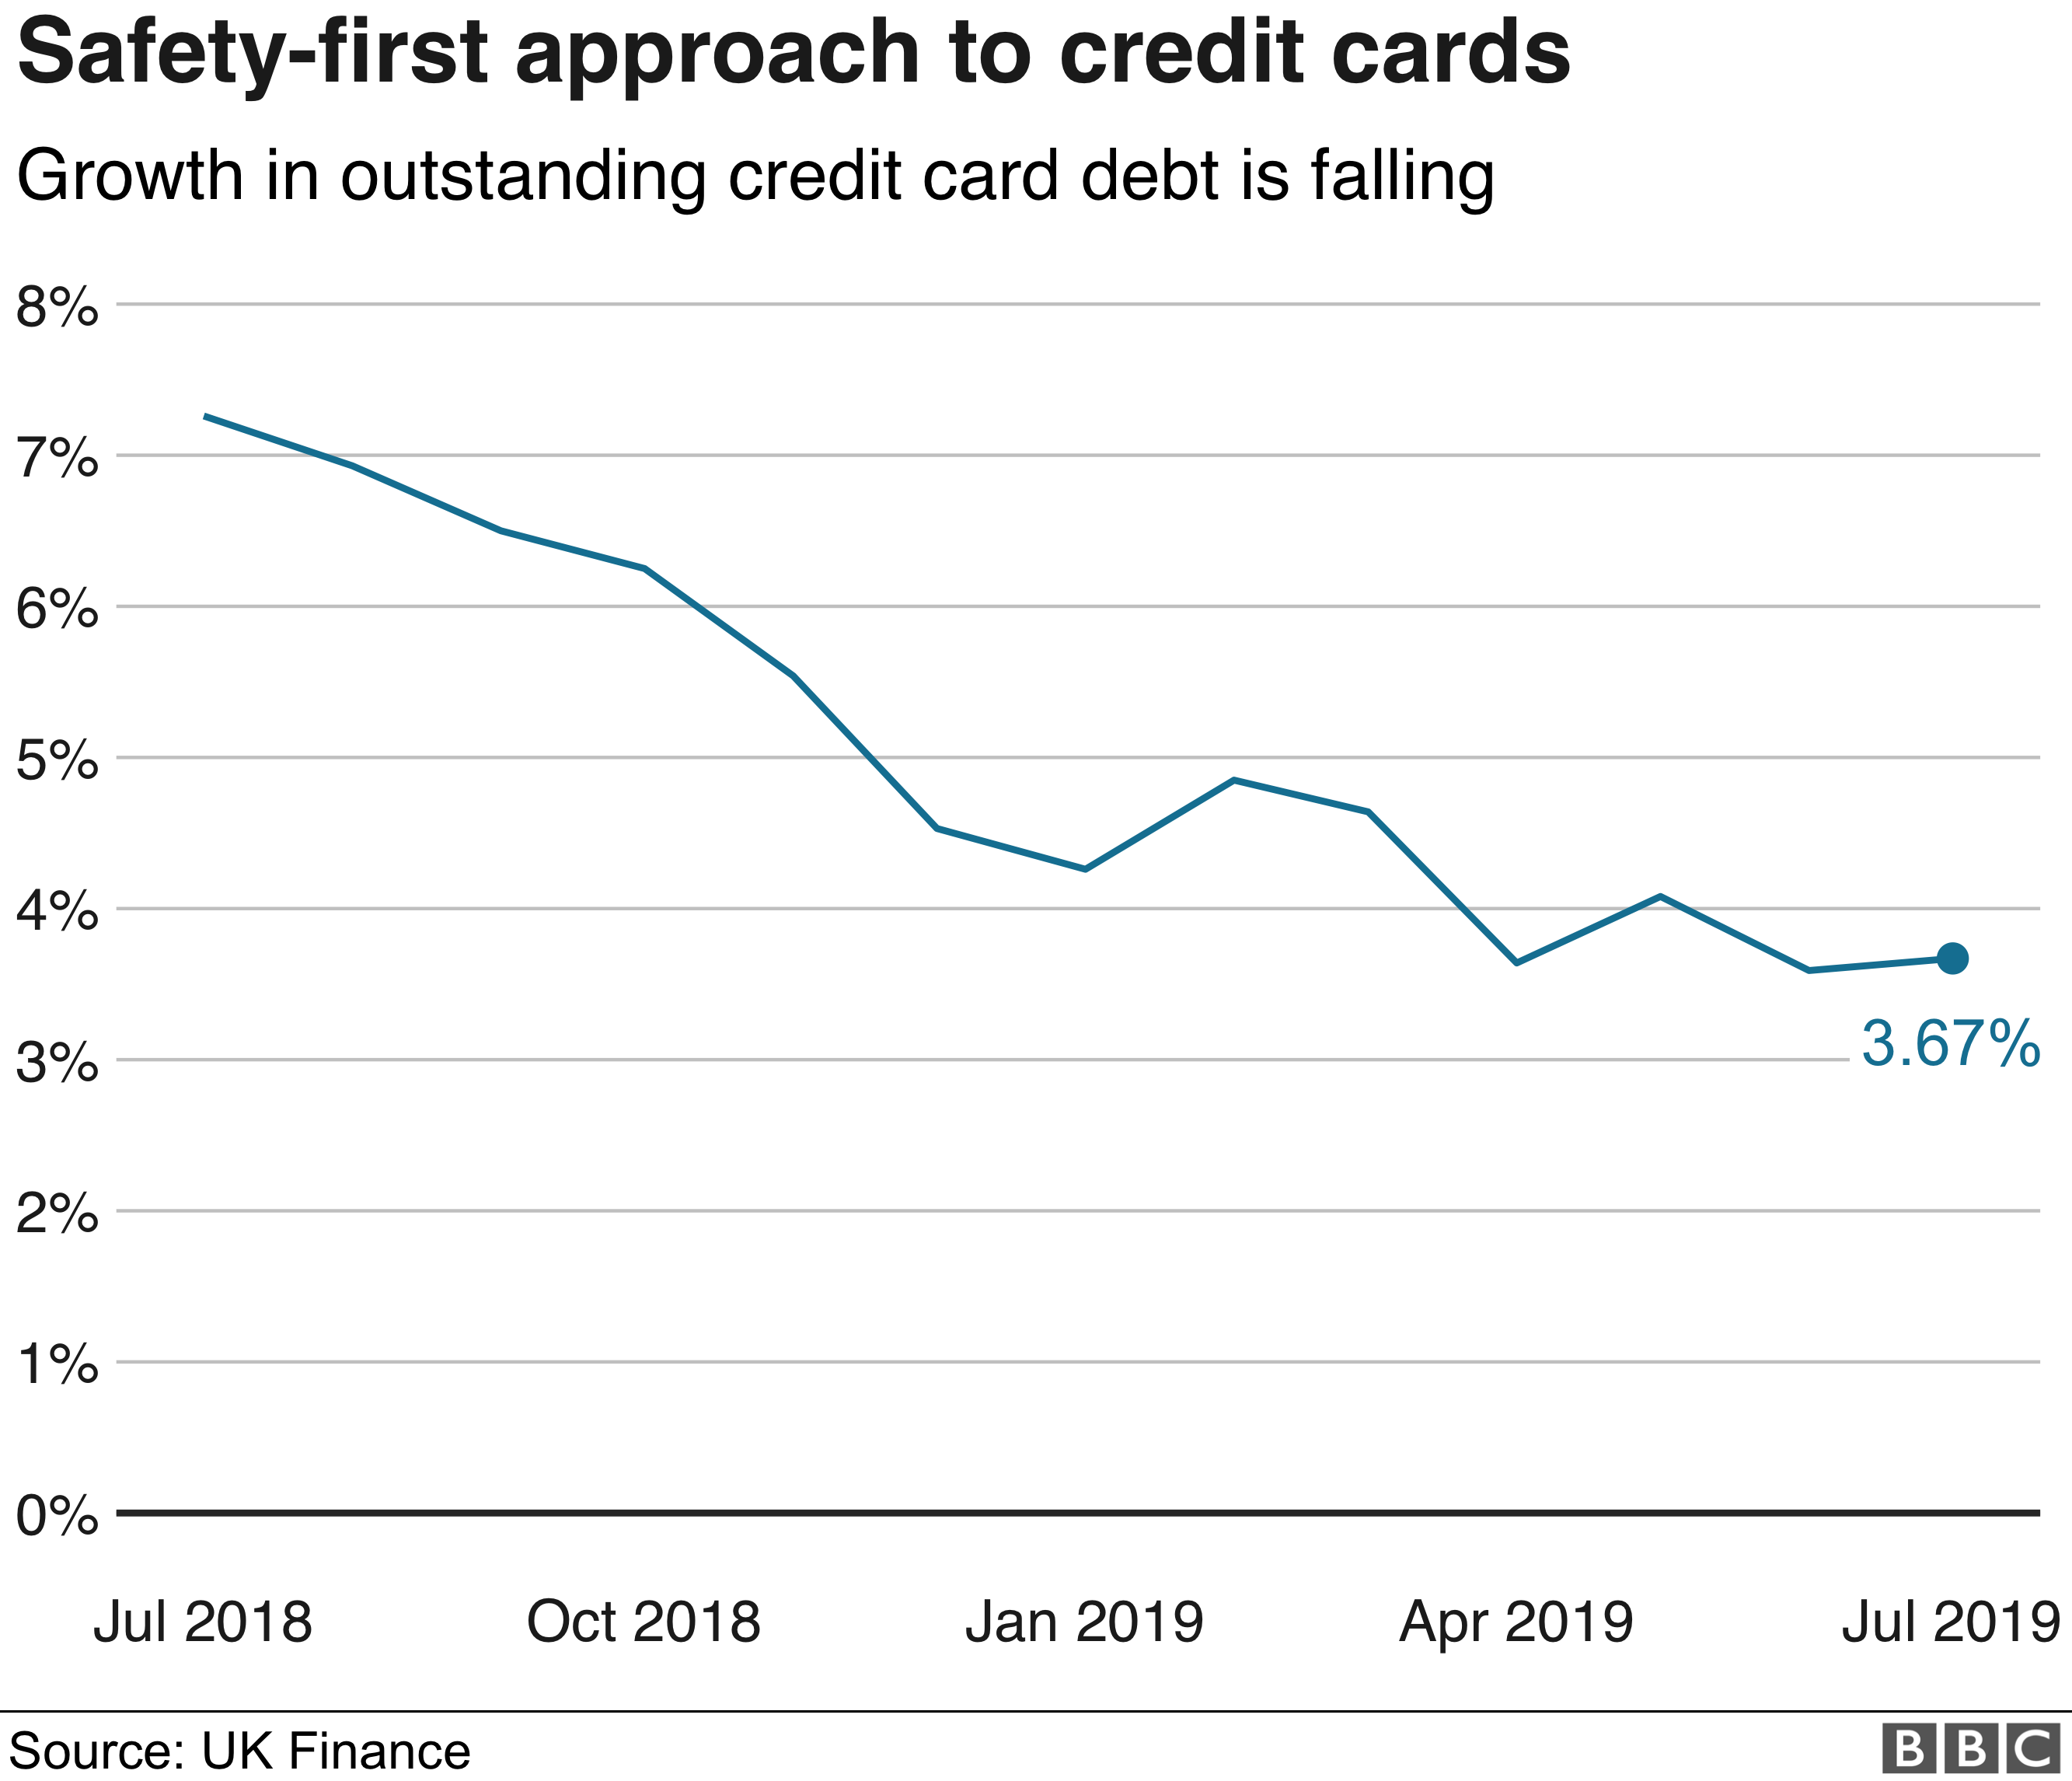 Annual growth rate in outstanding credit card debt